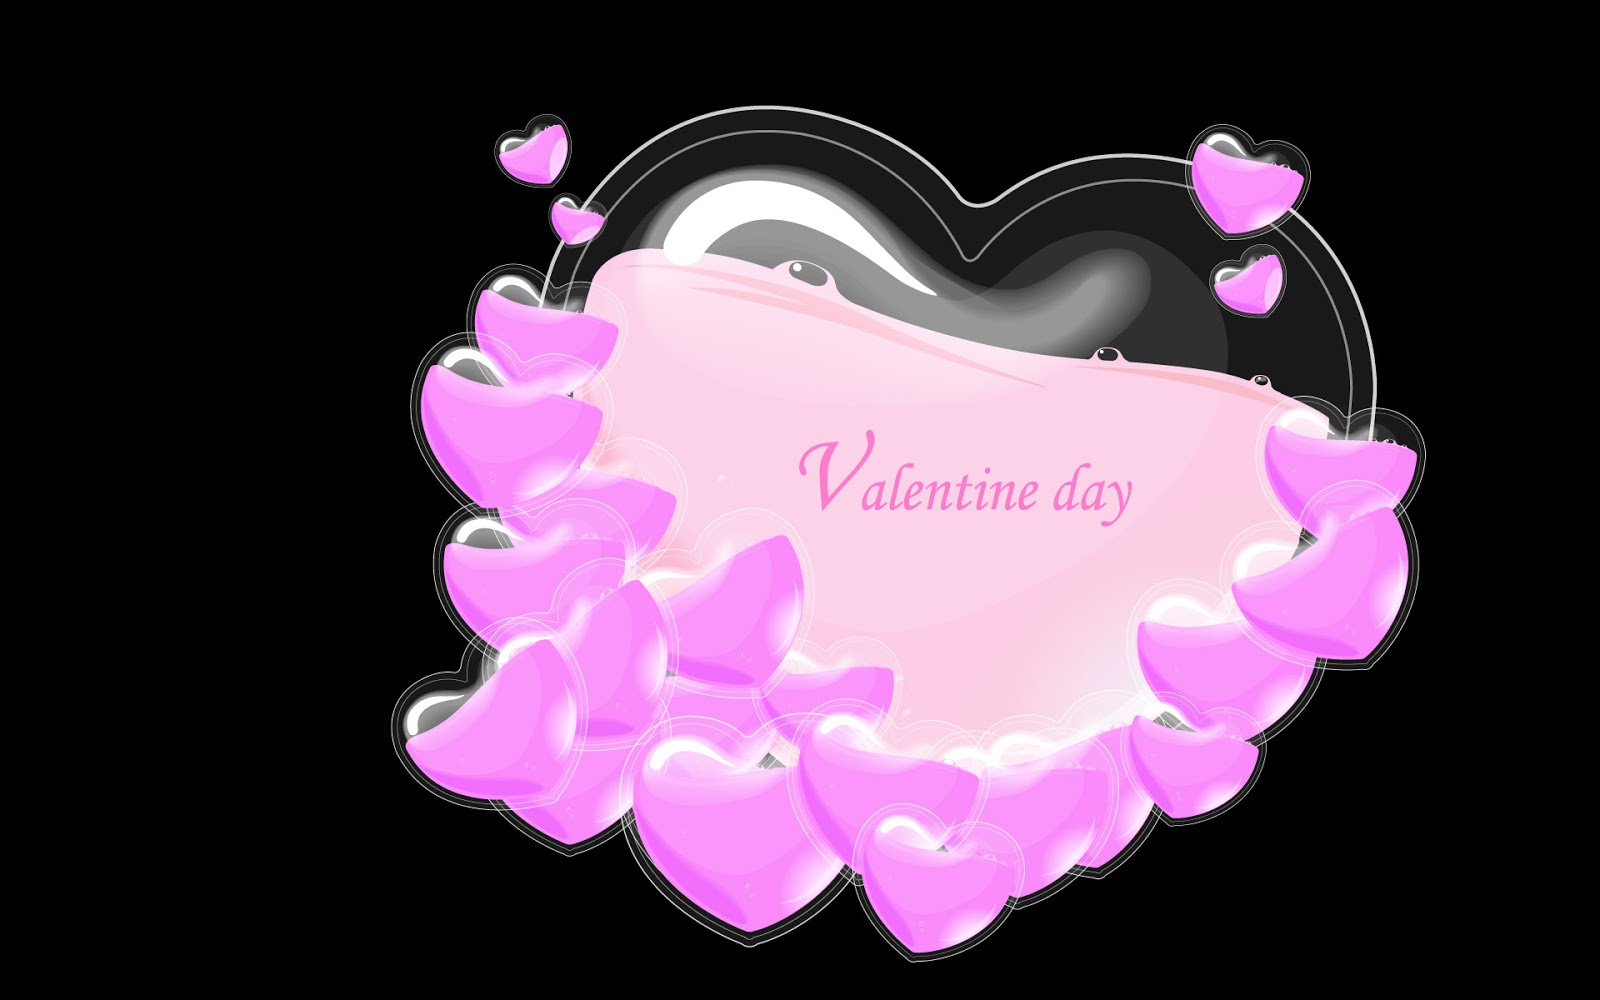 valentines day desktop backgrounds HD wallpapers 2016 1600x1000